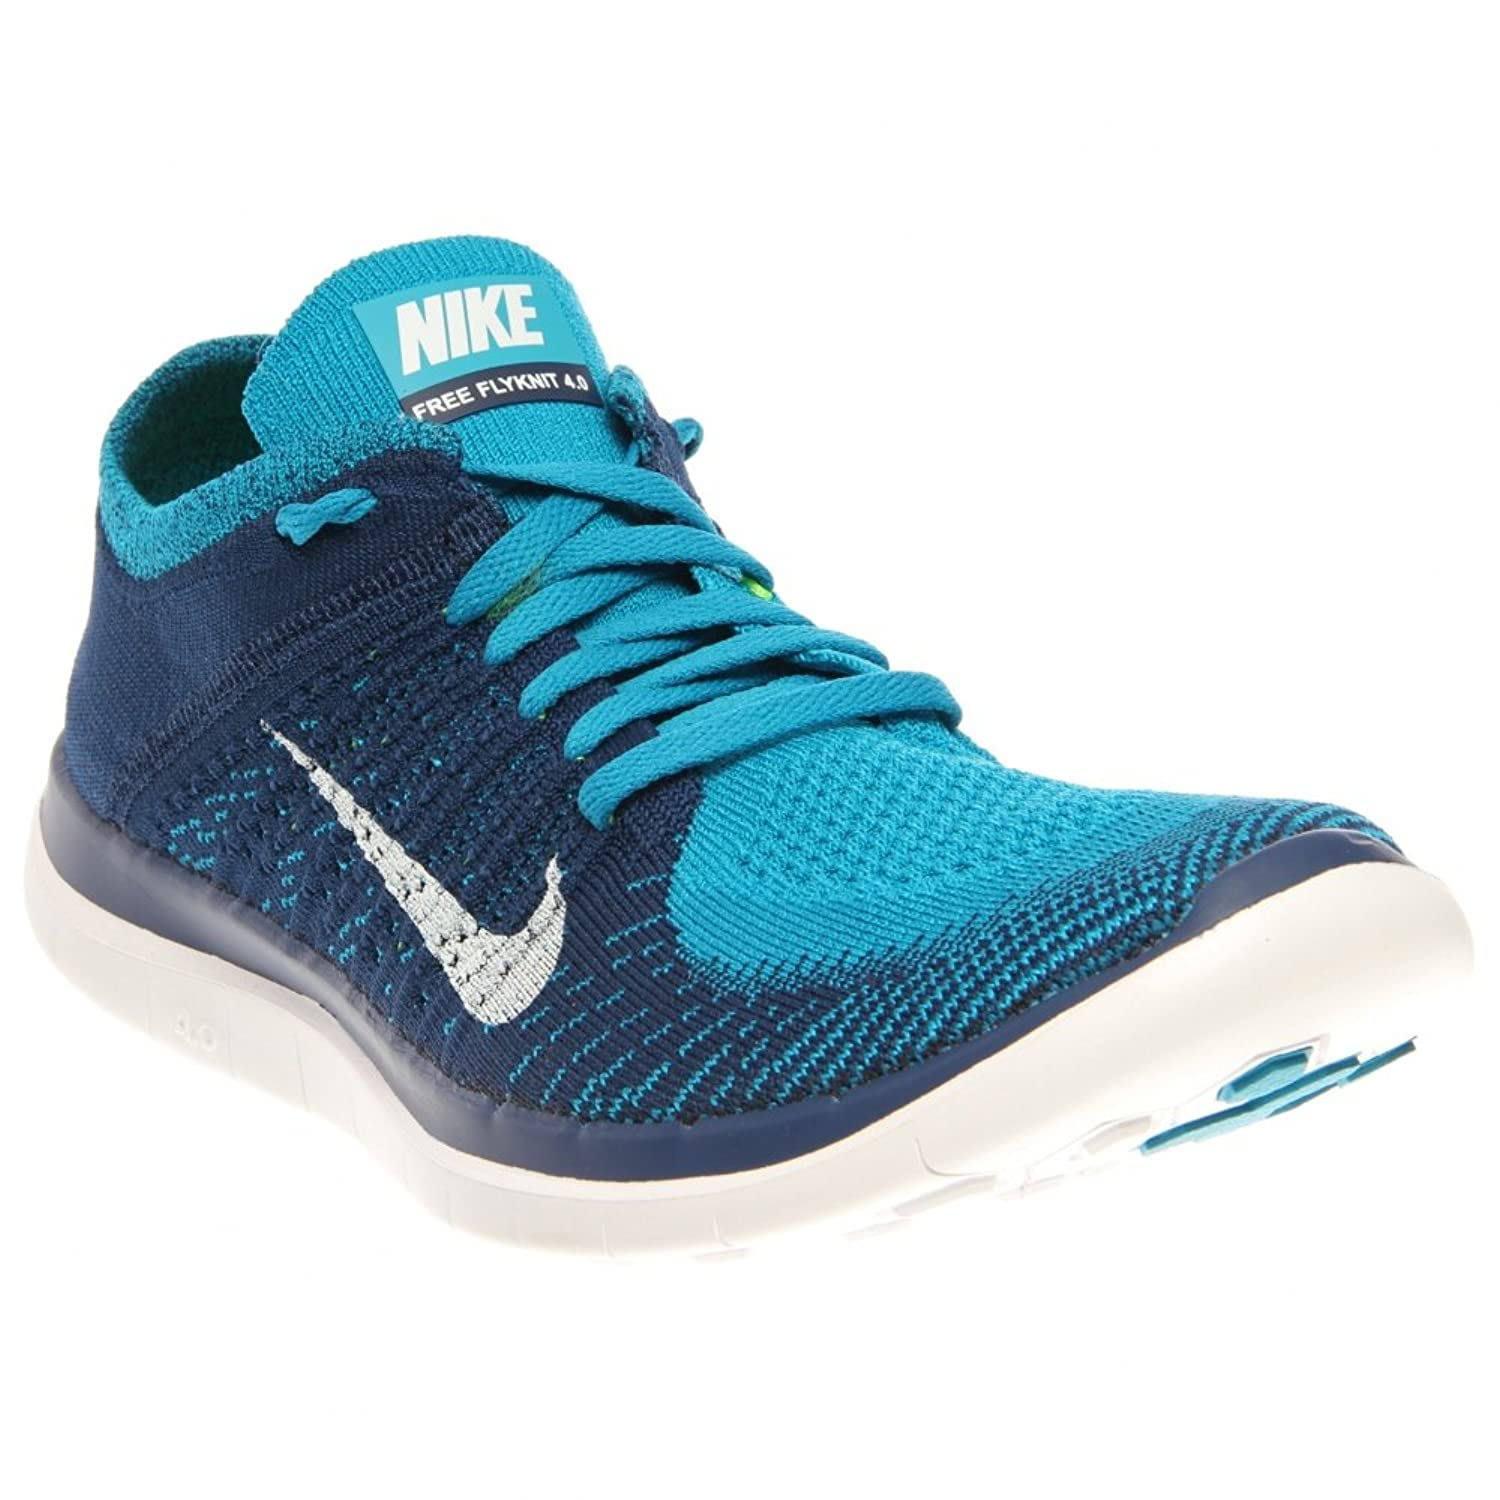 nike free flyknit 4.0 mens running trainers 631053 401 sneakers shoes (uk 8  us 9 eu 42.5): Amazon.co.uk: Shoes & Bags